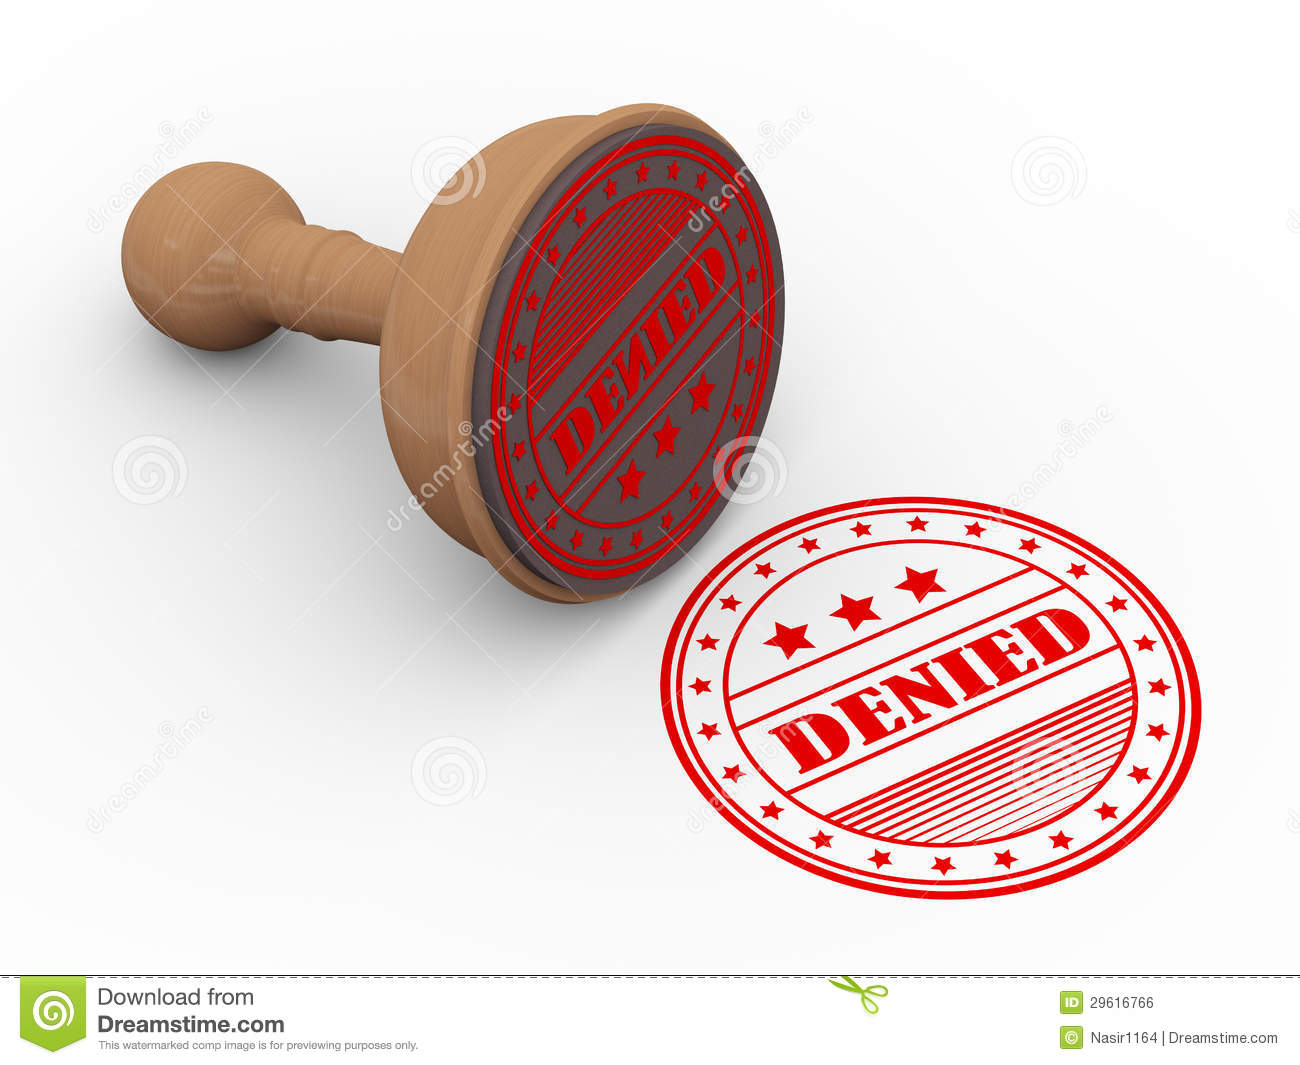 3d Wooden Rubber Stamp Denied Royalty Free Stock Image